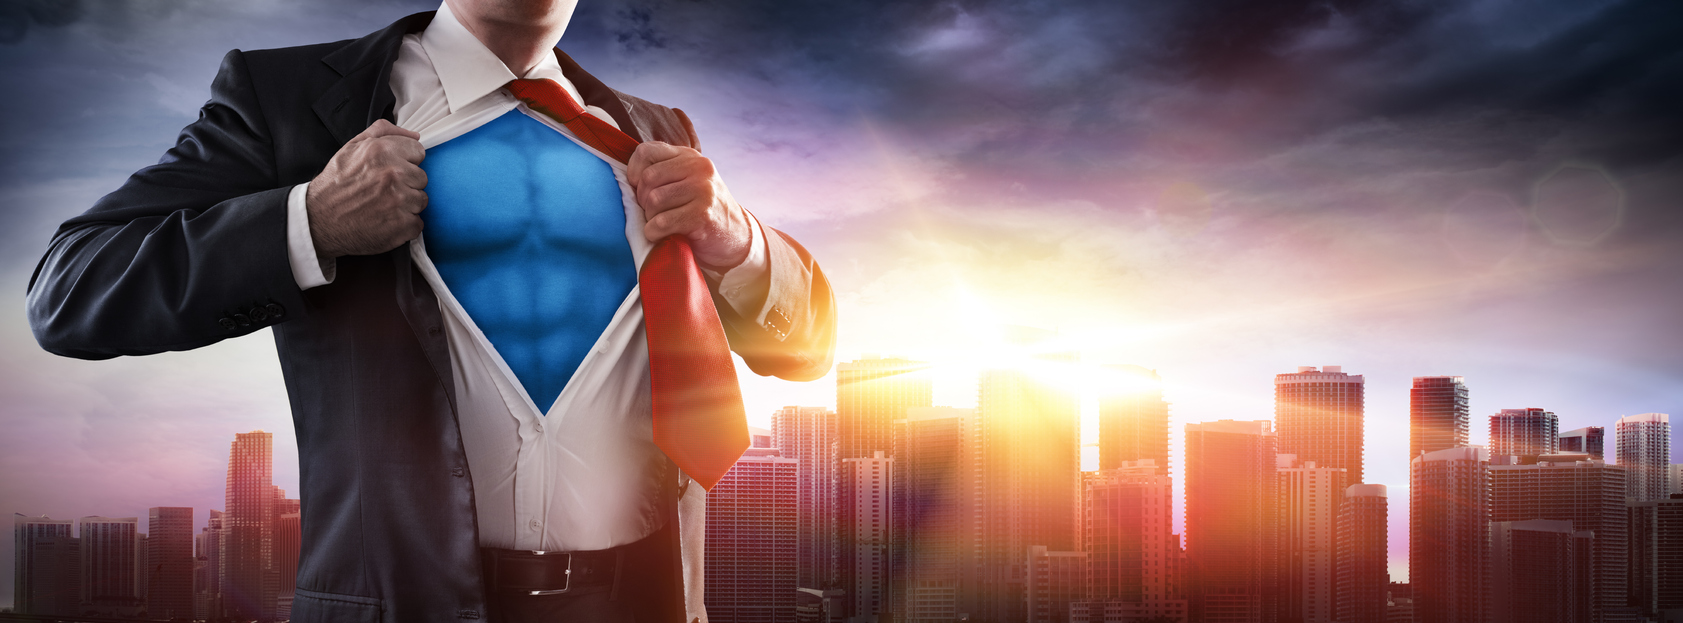 Business's-Superhero-518414242_1689x625